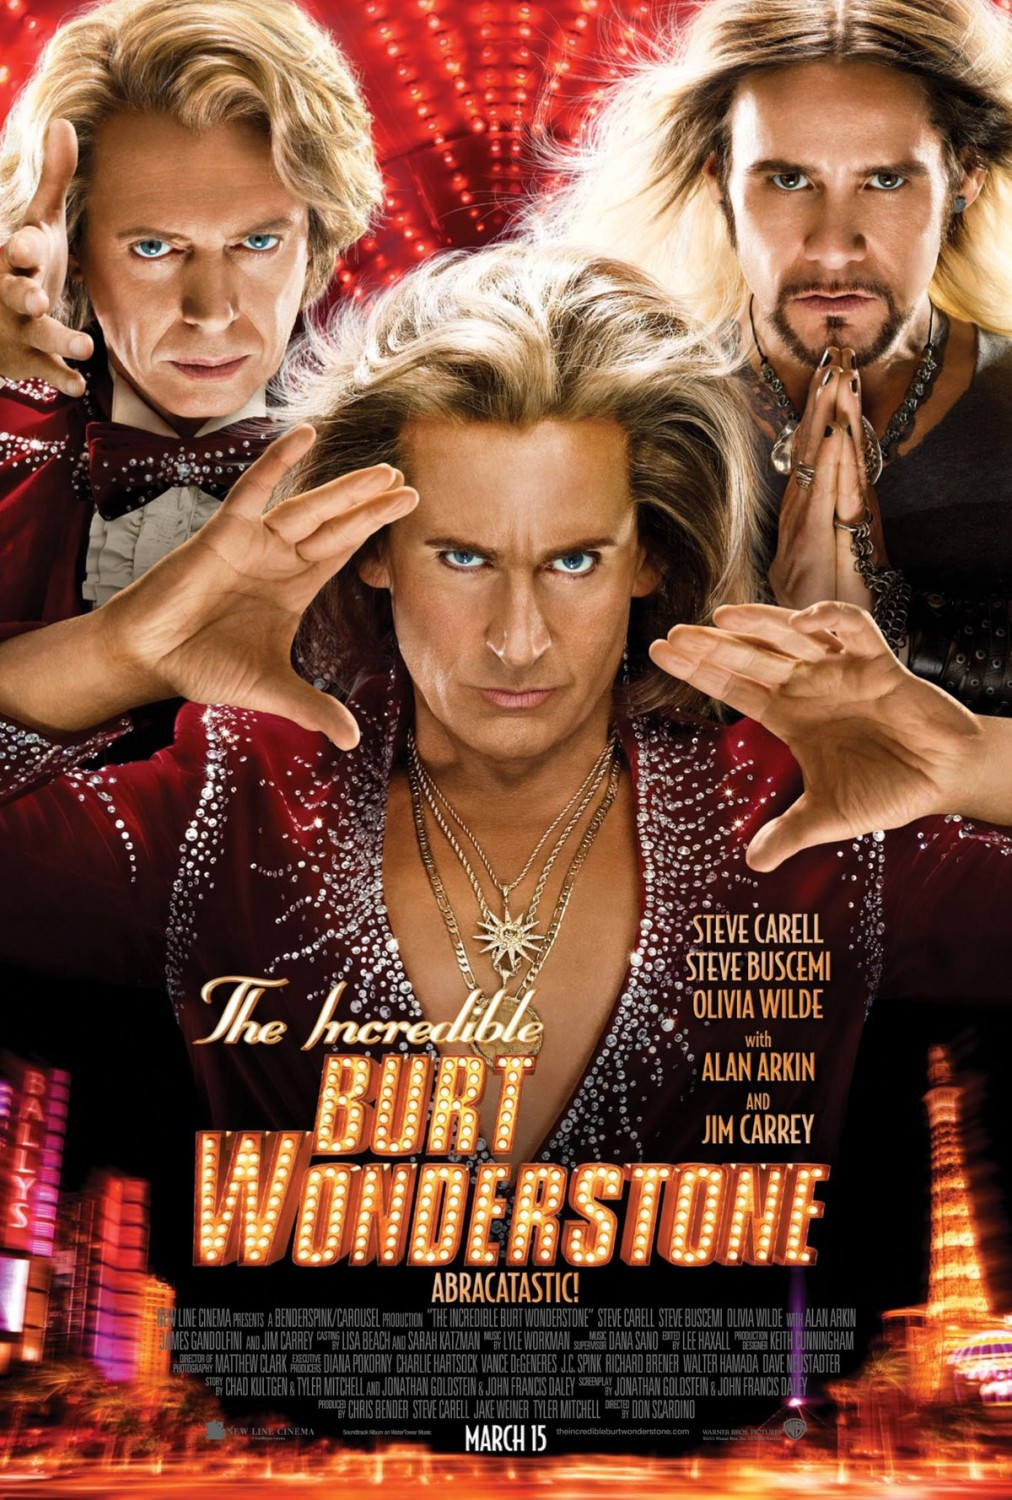 The Incredible Burt Wonderstone - Poster - 005